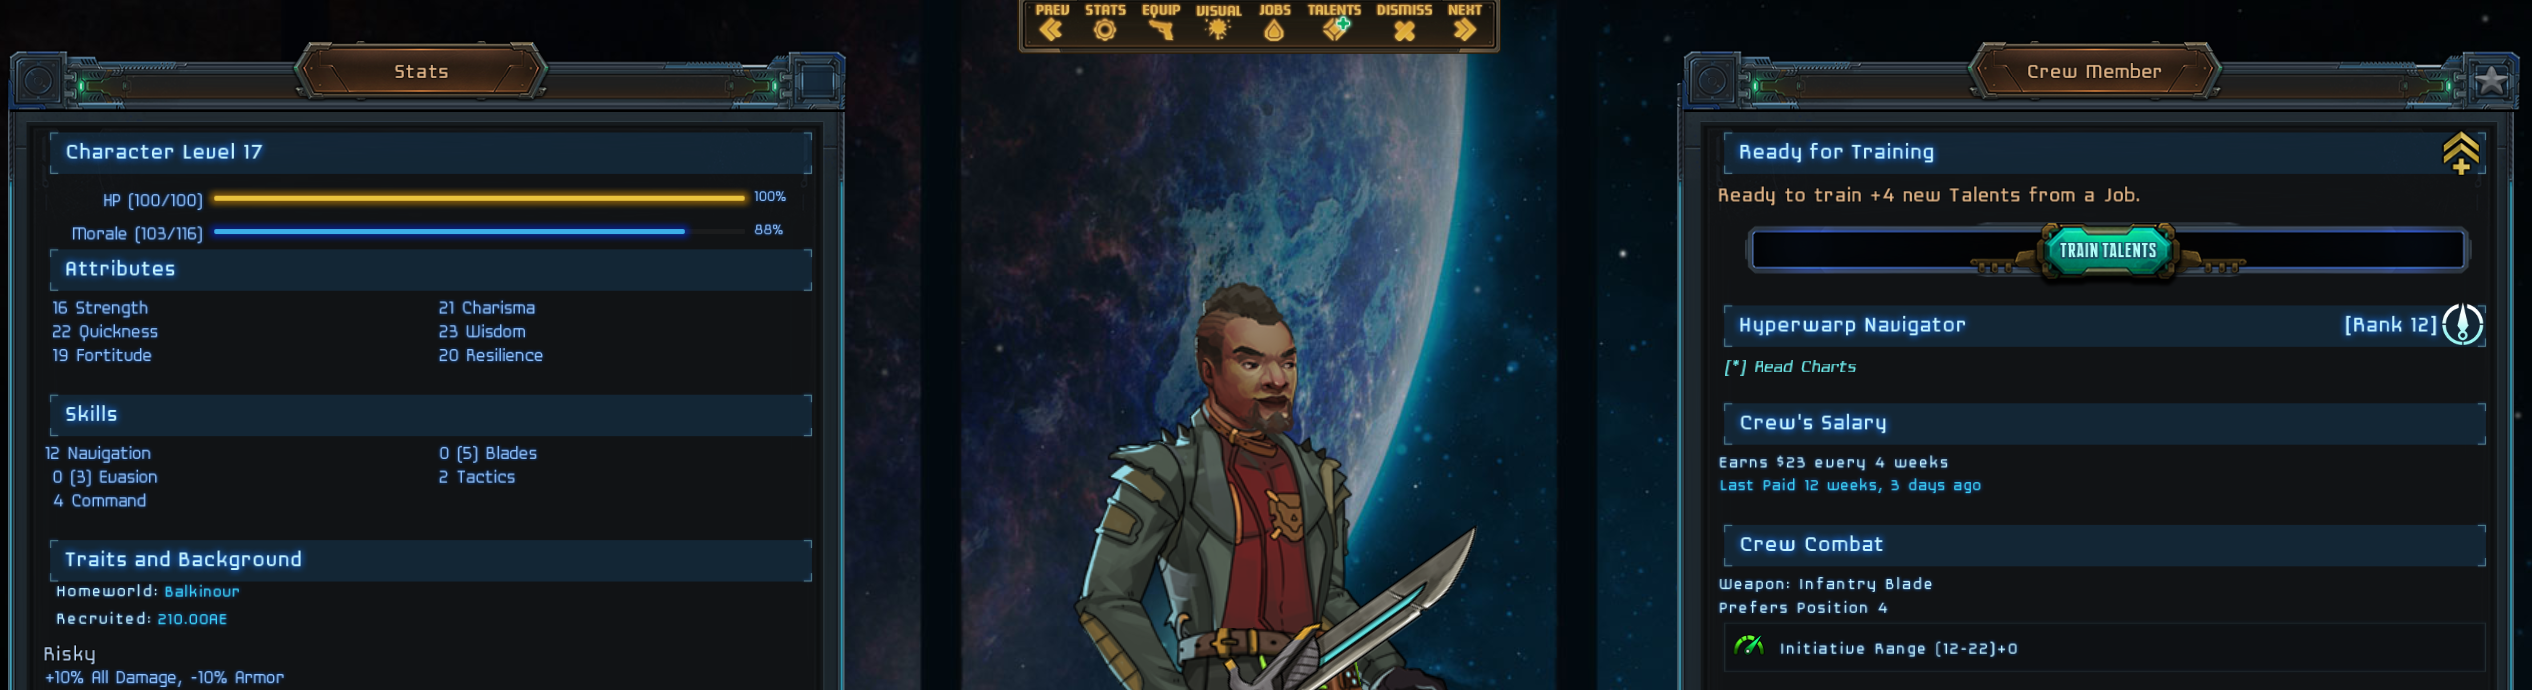 May 12 Update #149: Wayfinder's Command Star Traders